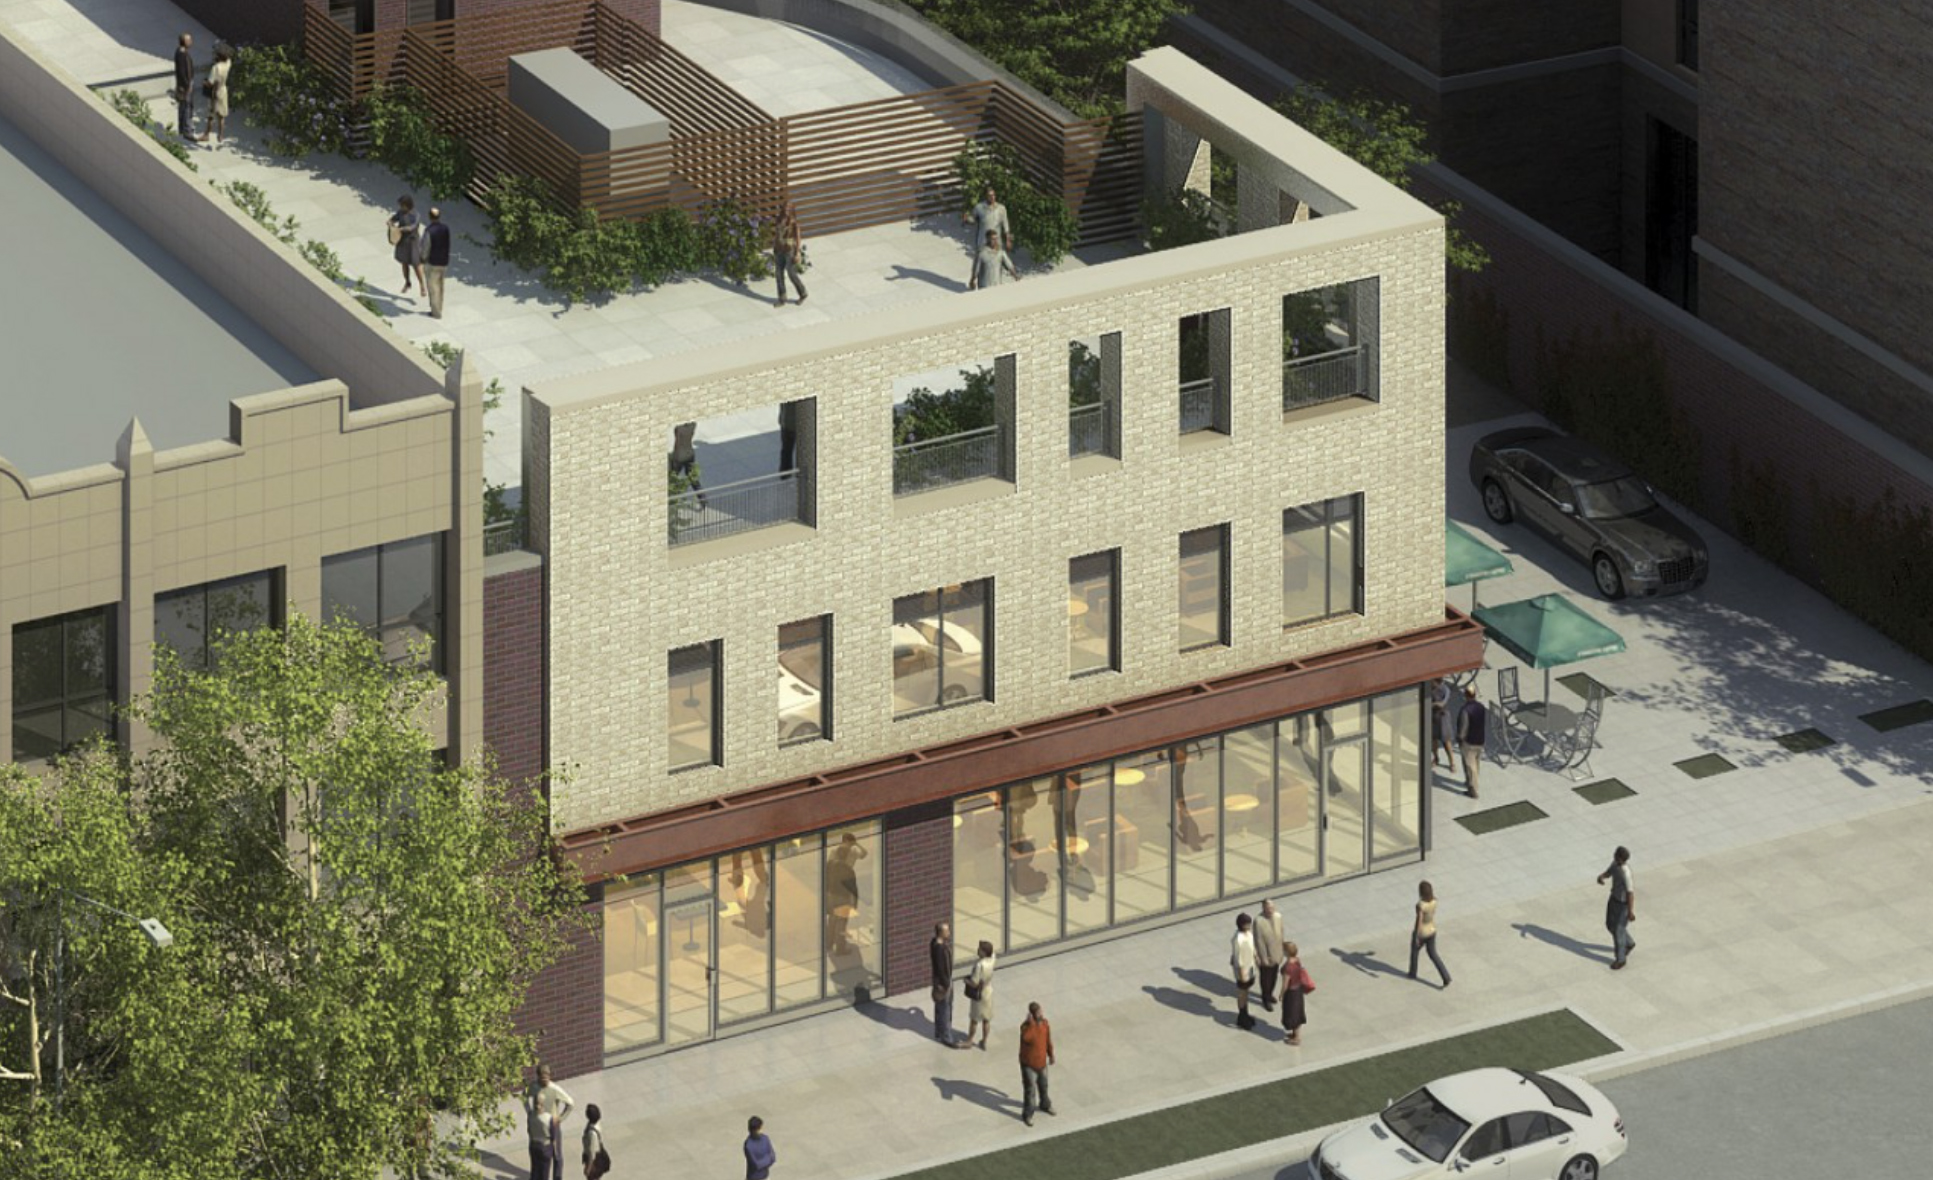 Rendering of 626 Flatbush Avenue, showing third floor terrace. Credit: Marvel Architects